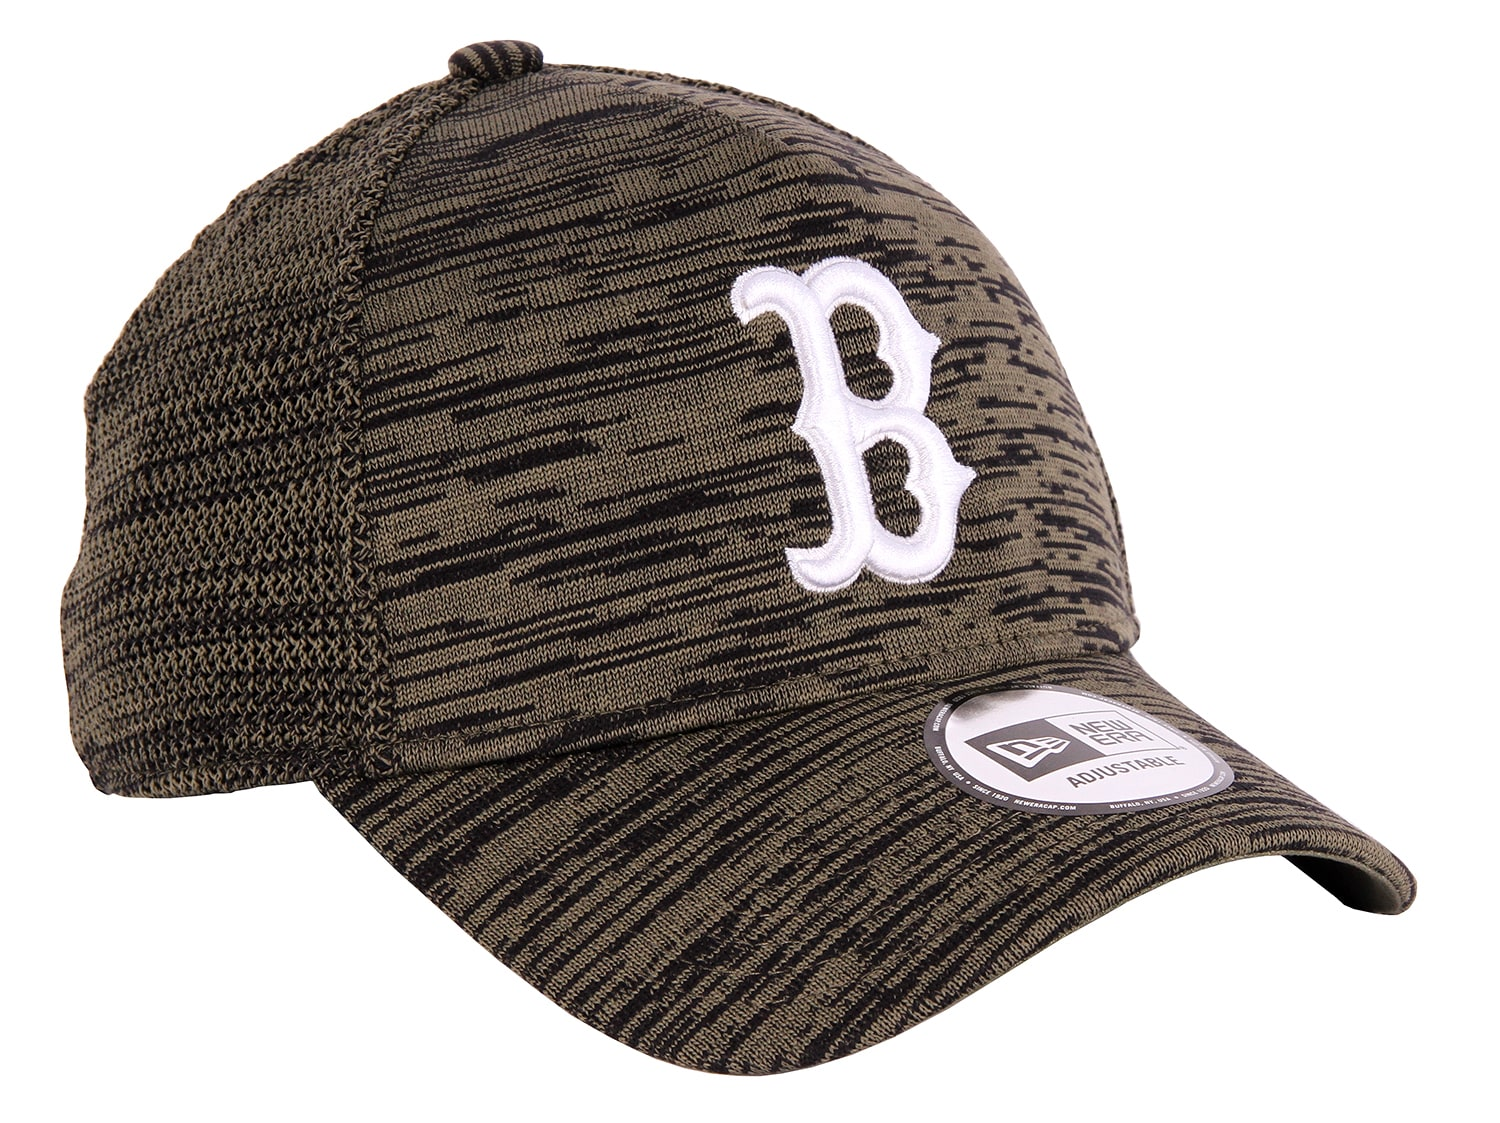 8d663d1c2c25 NEW Era Boston Red Sox MLB progettato Fit Cap